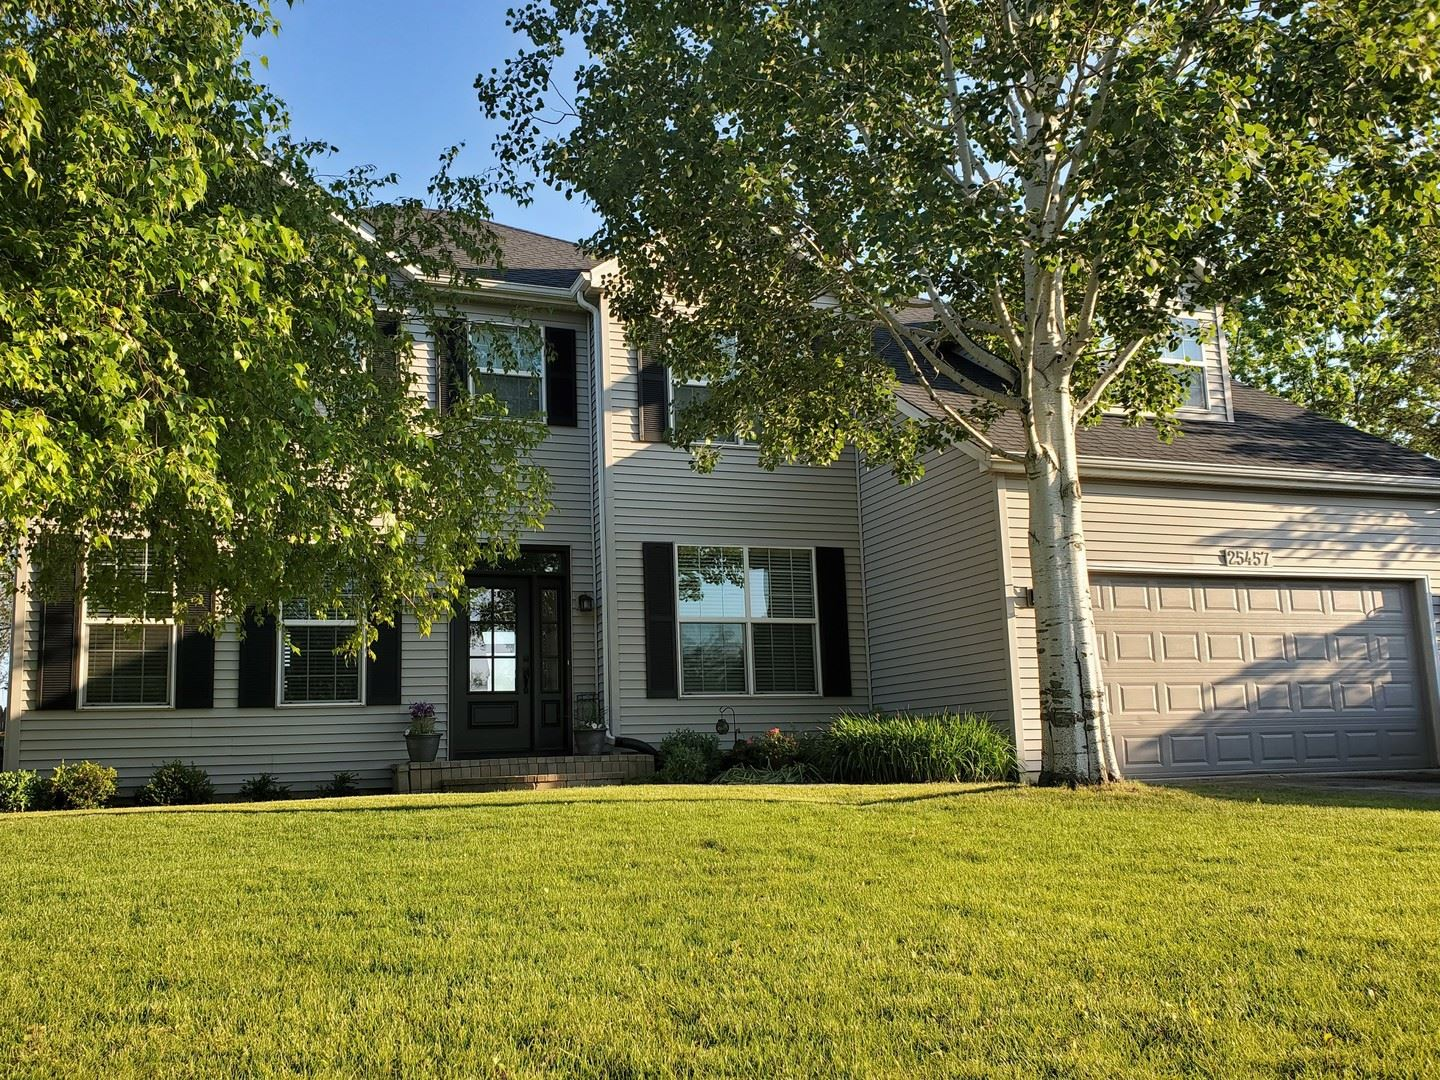 Photo of 25457 Blakely Drive, Plainfield, IL 60585 (MLS # 11127923)